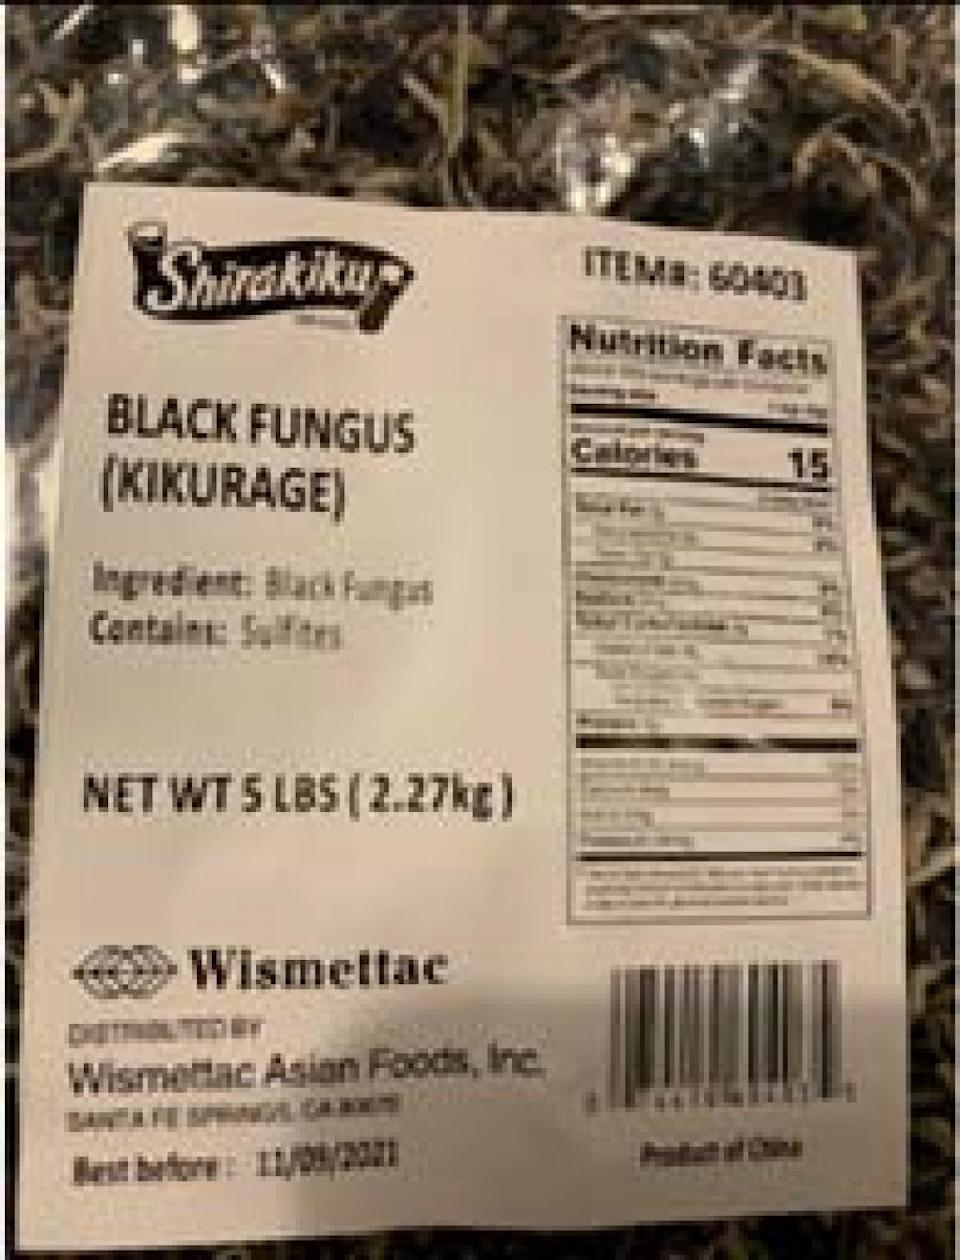 Wismettac Asian Foods recalled bags of dried fungus because the mushrooms could be linked to a salmonella outbreak.